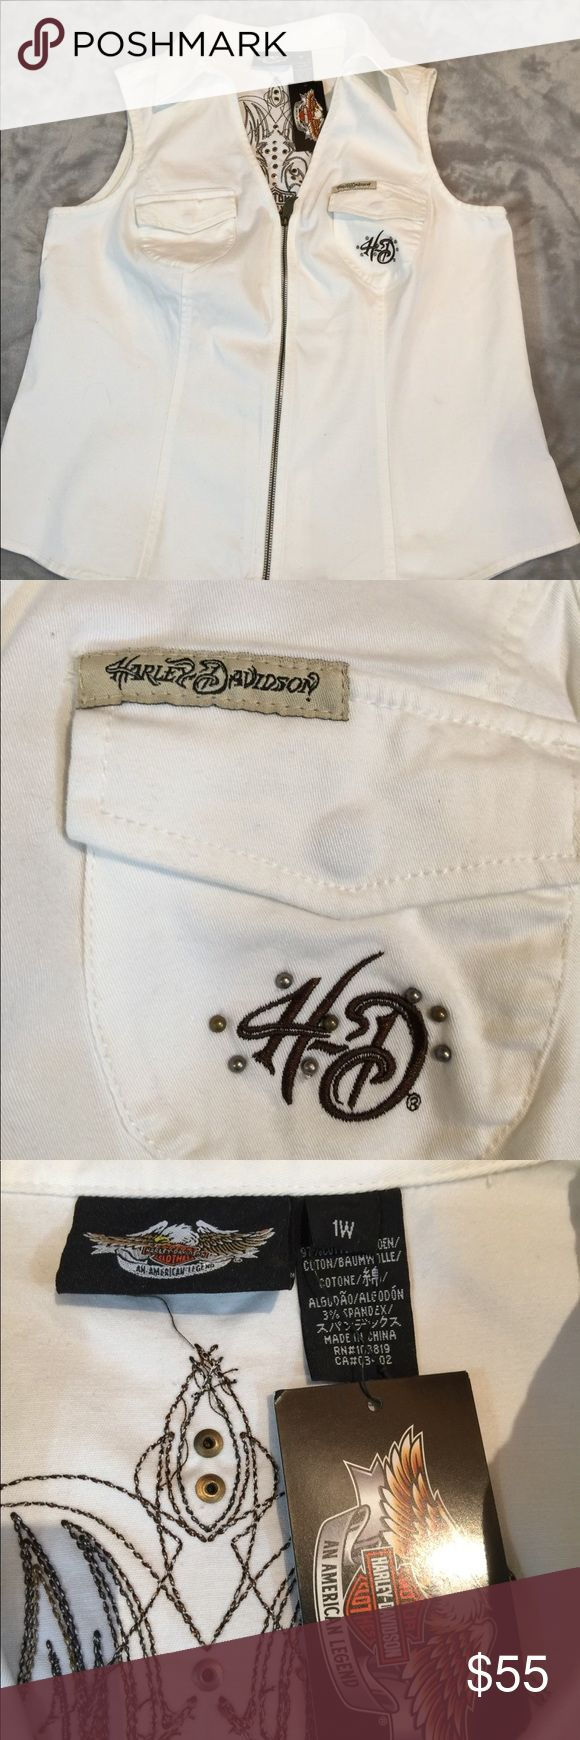 Harley Davidson White Denim Vest/Top NWT Perfect new with tags condition. Size 1W. It has spandex so it's got some stretch. 24 inches pit to pit. 15 inches pit to hem   No pets or smoke closet Harley-Davidson Tops